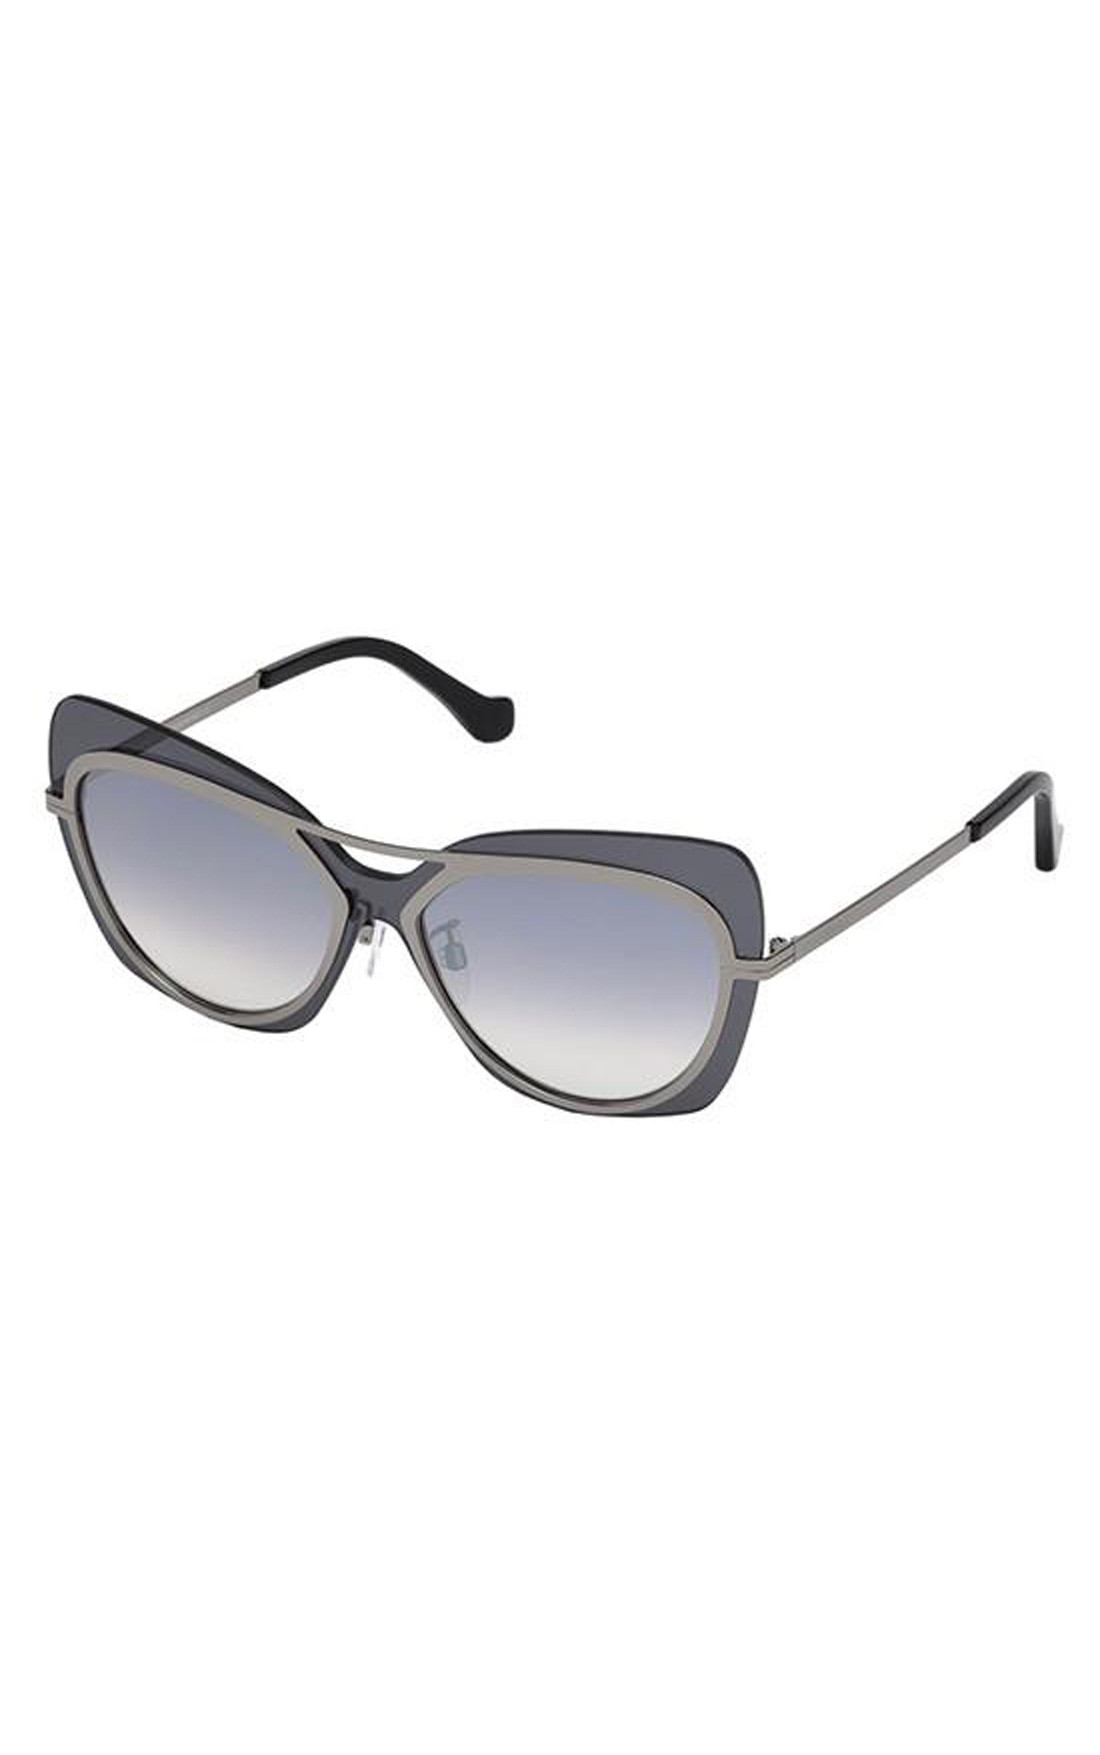 Balenciaga - Dark Ruthenium Oversized Sunglasses (BA00875712C)